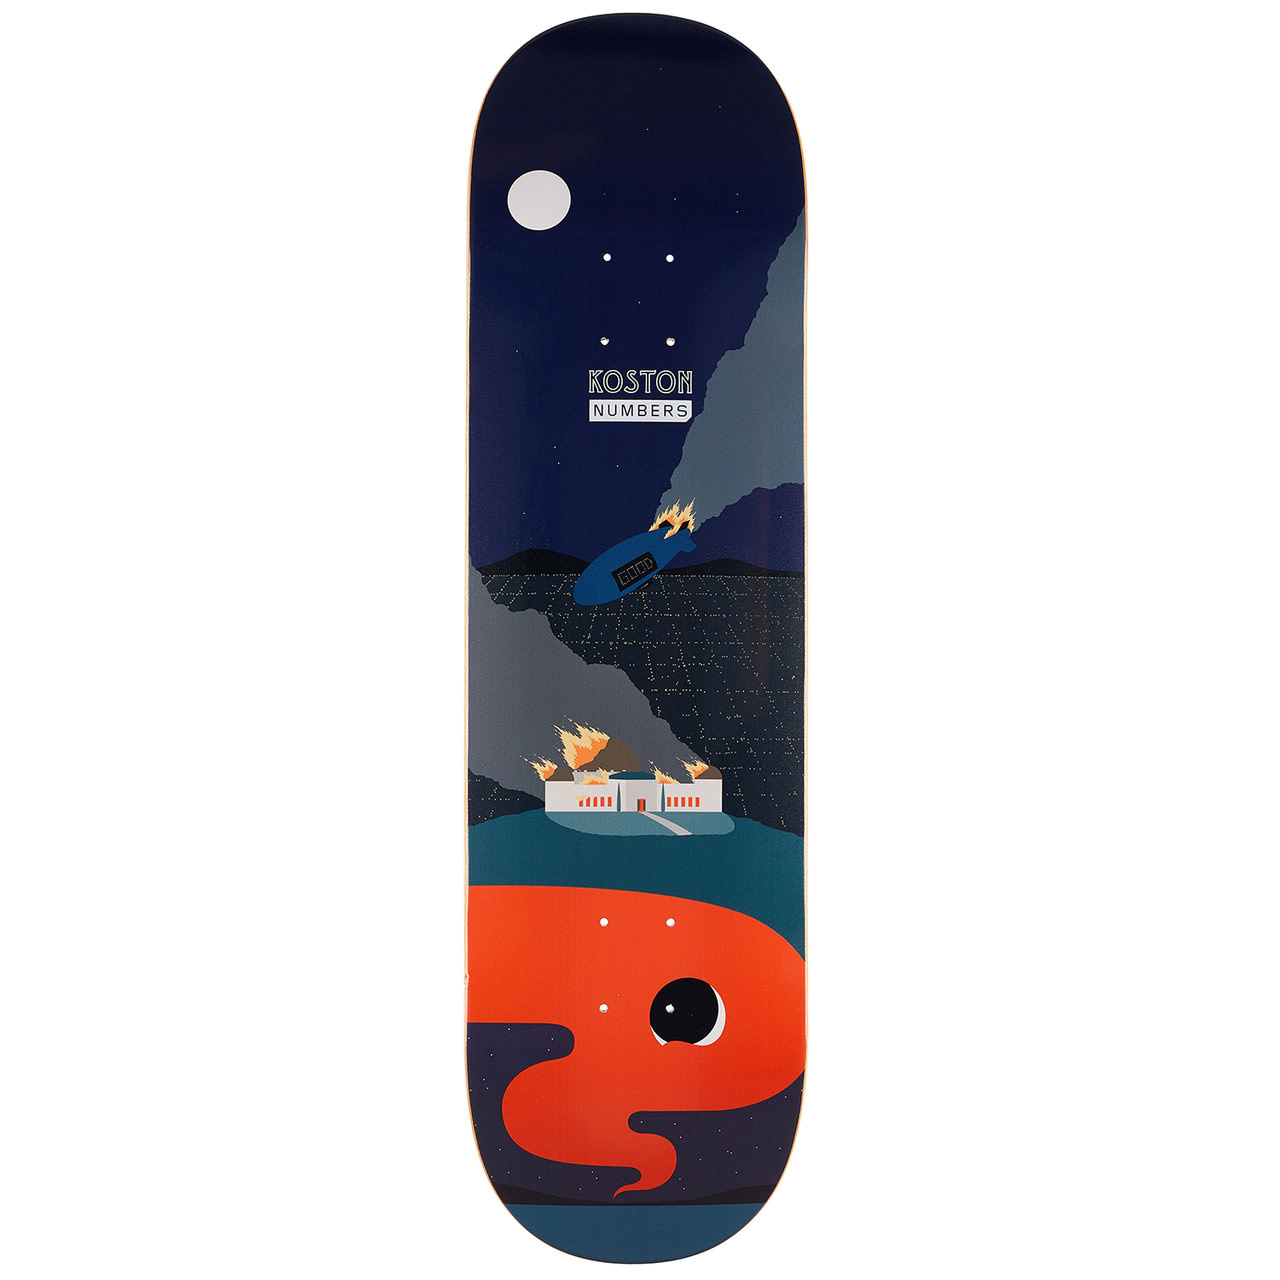 Numbers Edition Koston Edition #6 (Series 1) 8.5